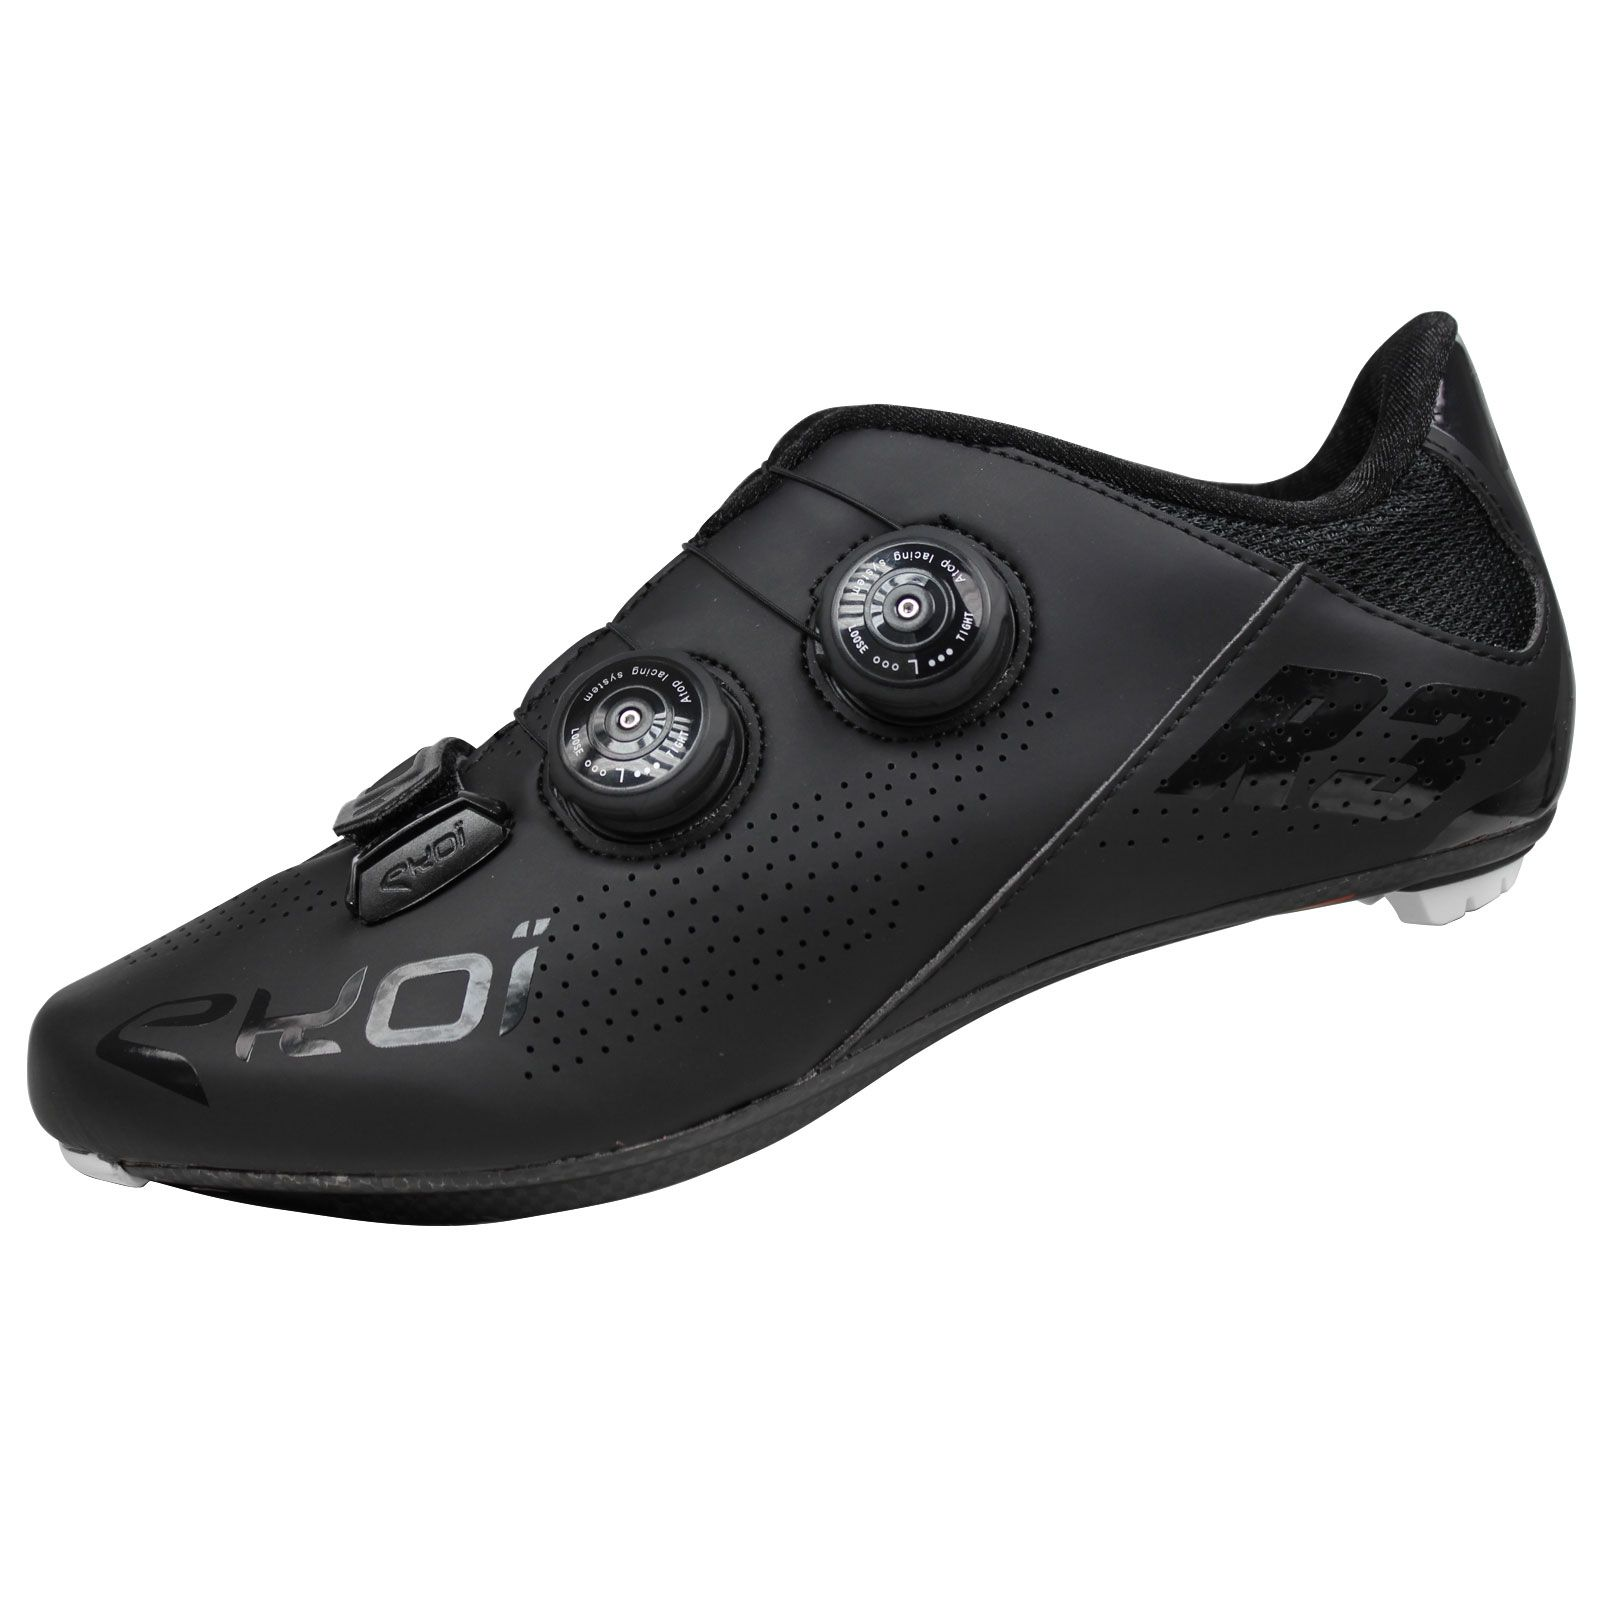 R3 matt black cycling shoes